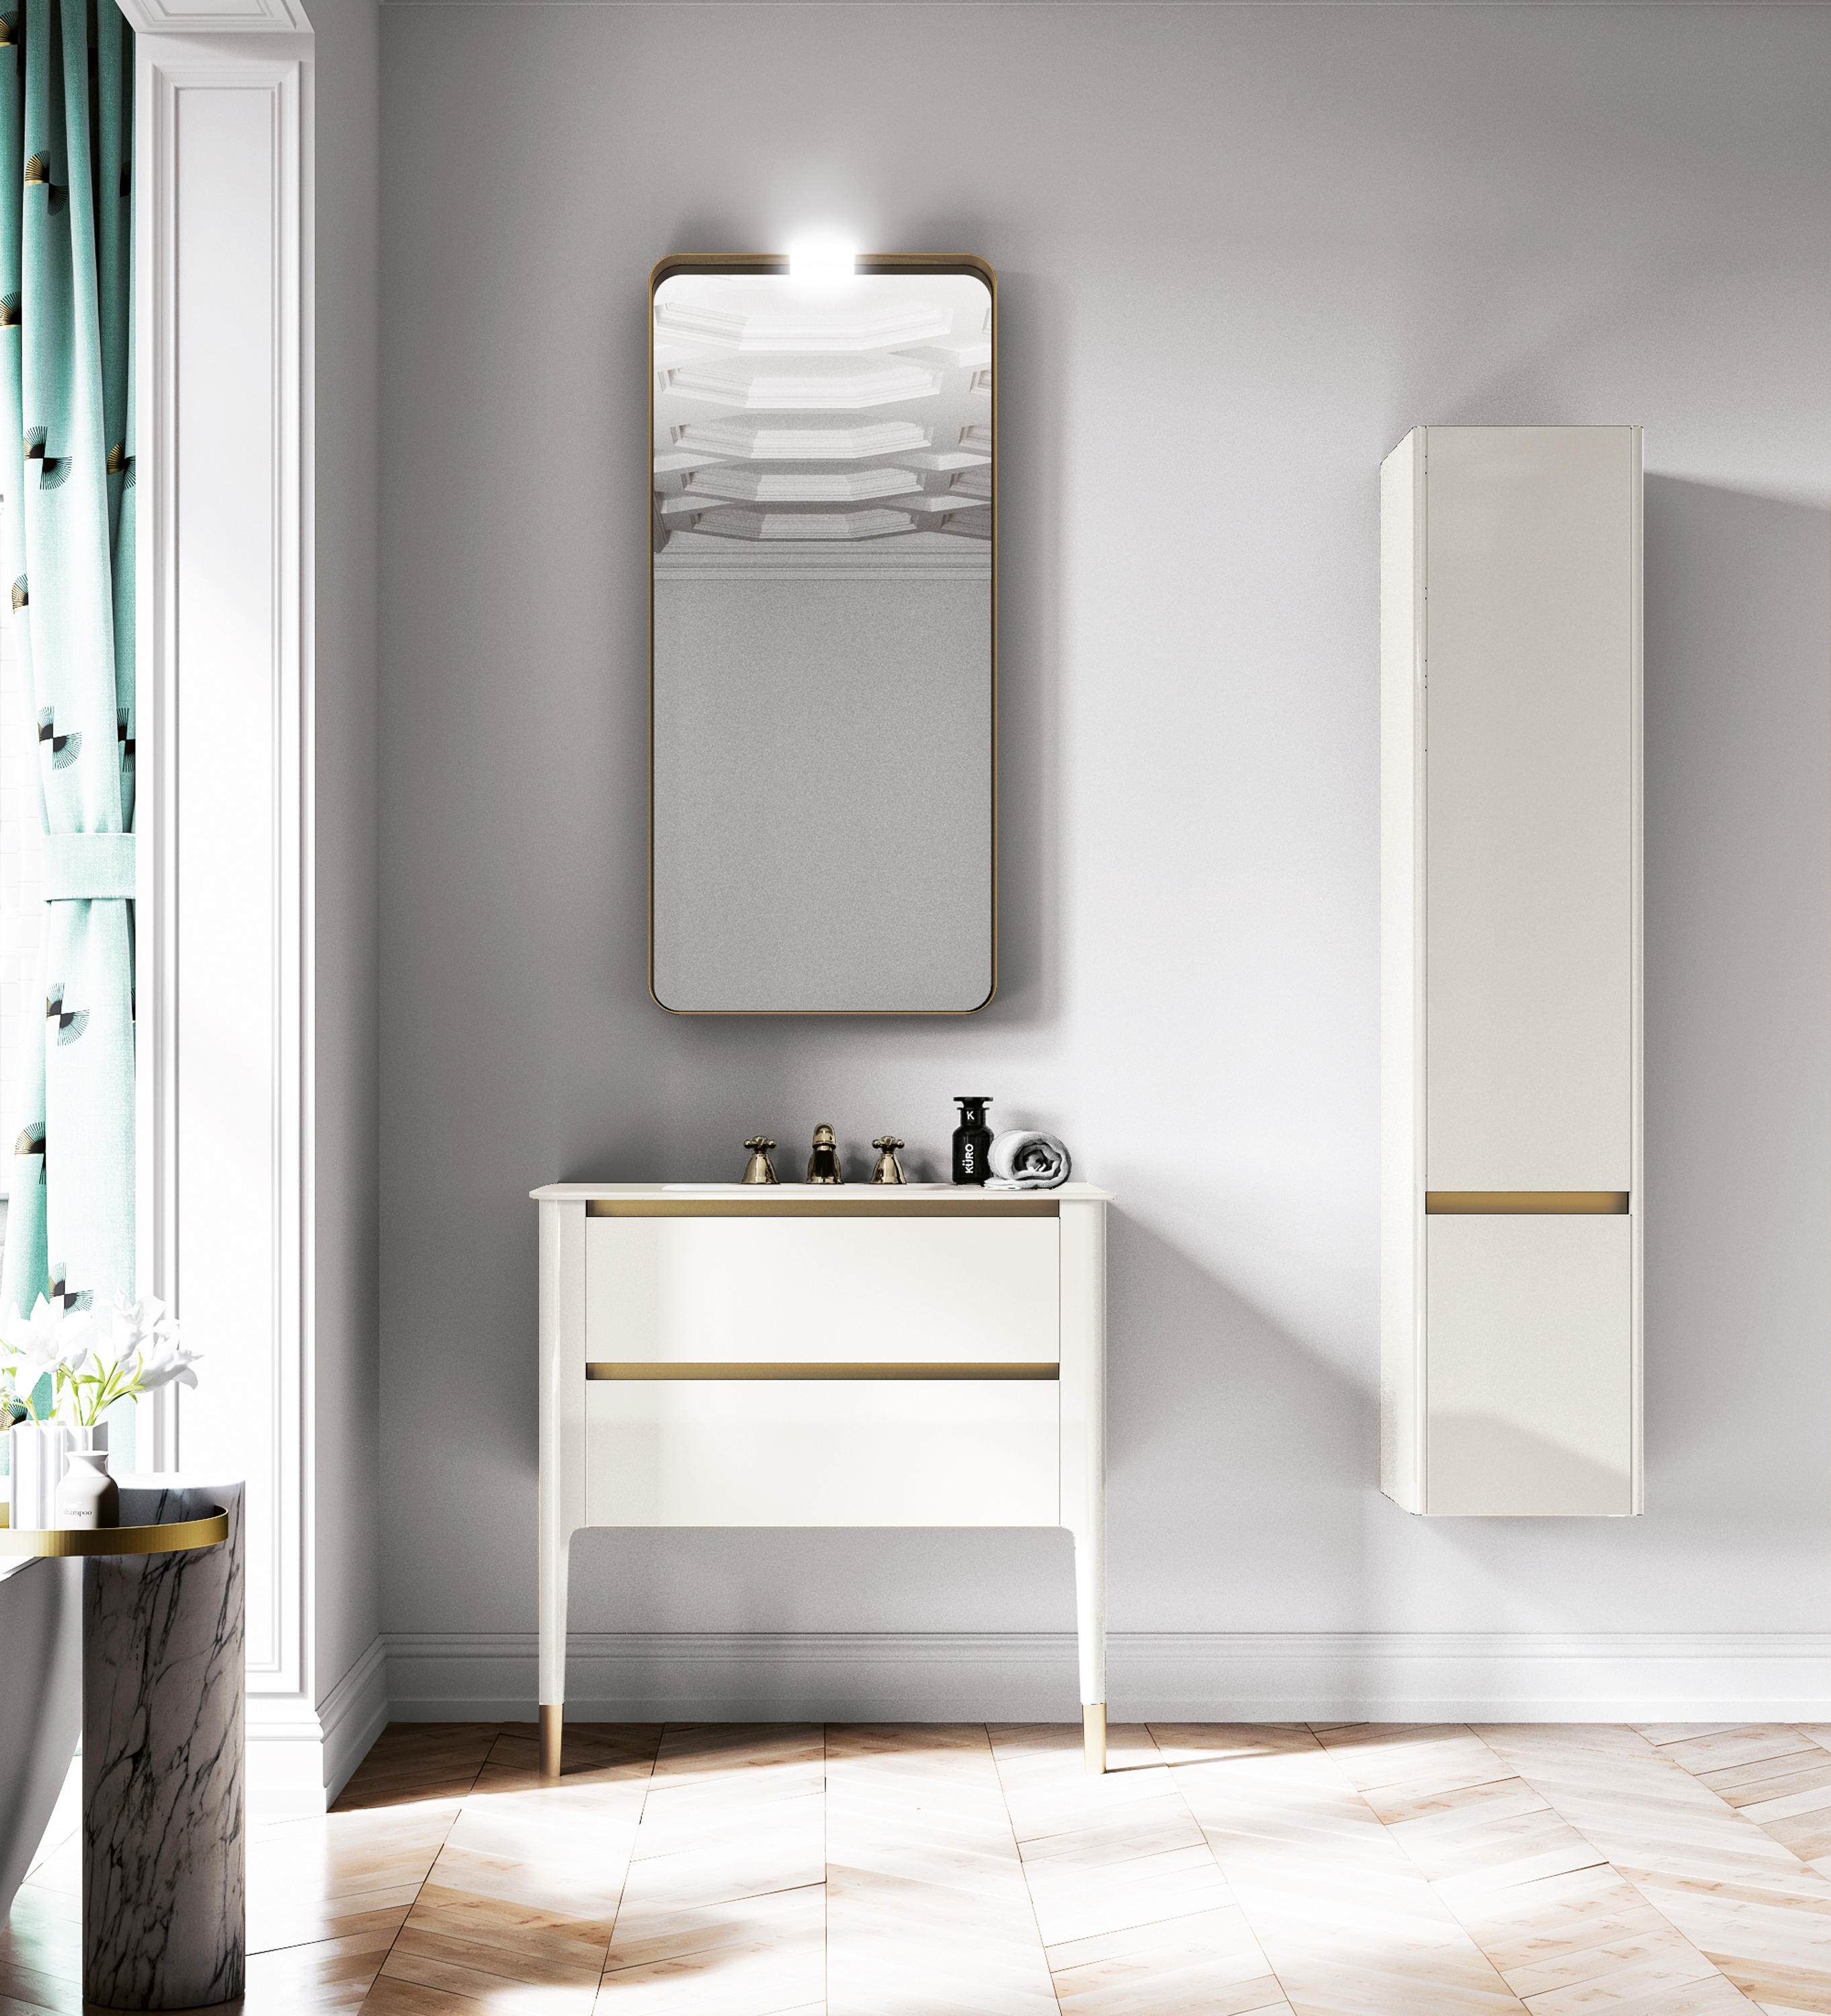 Bagno Design Bradford Art Wall Mounted Mirror Light Wall Lights From Bagnodesign